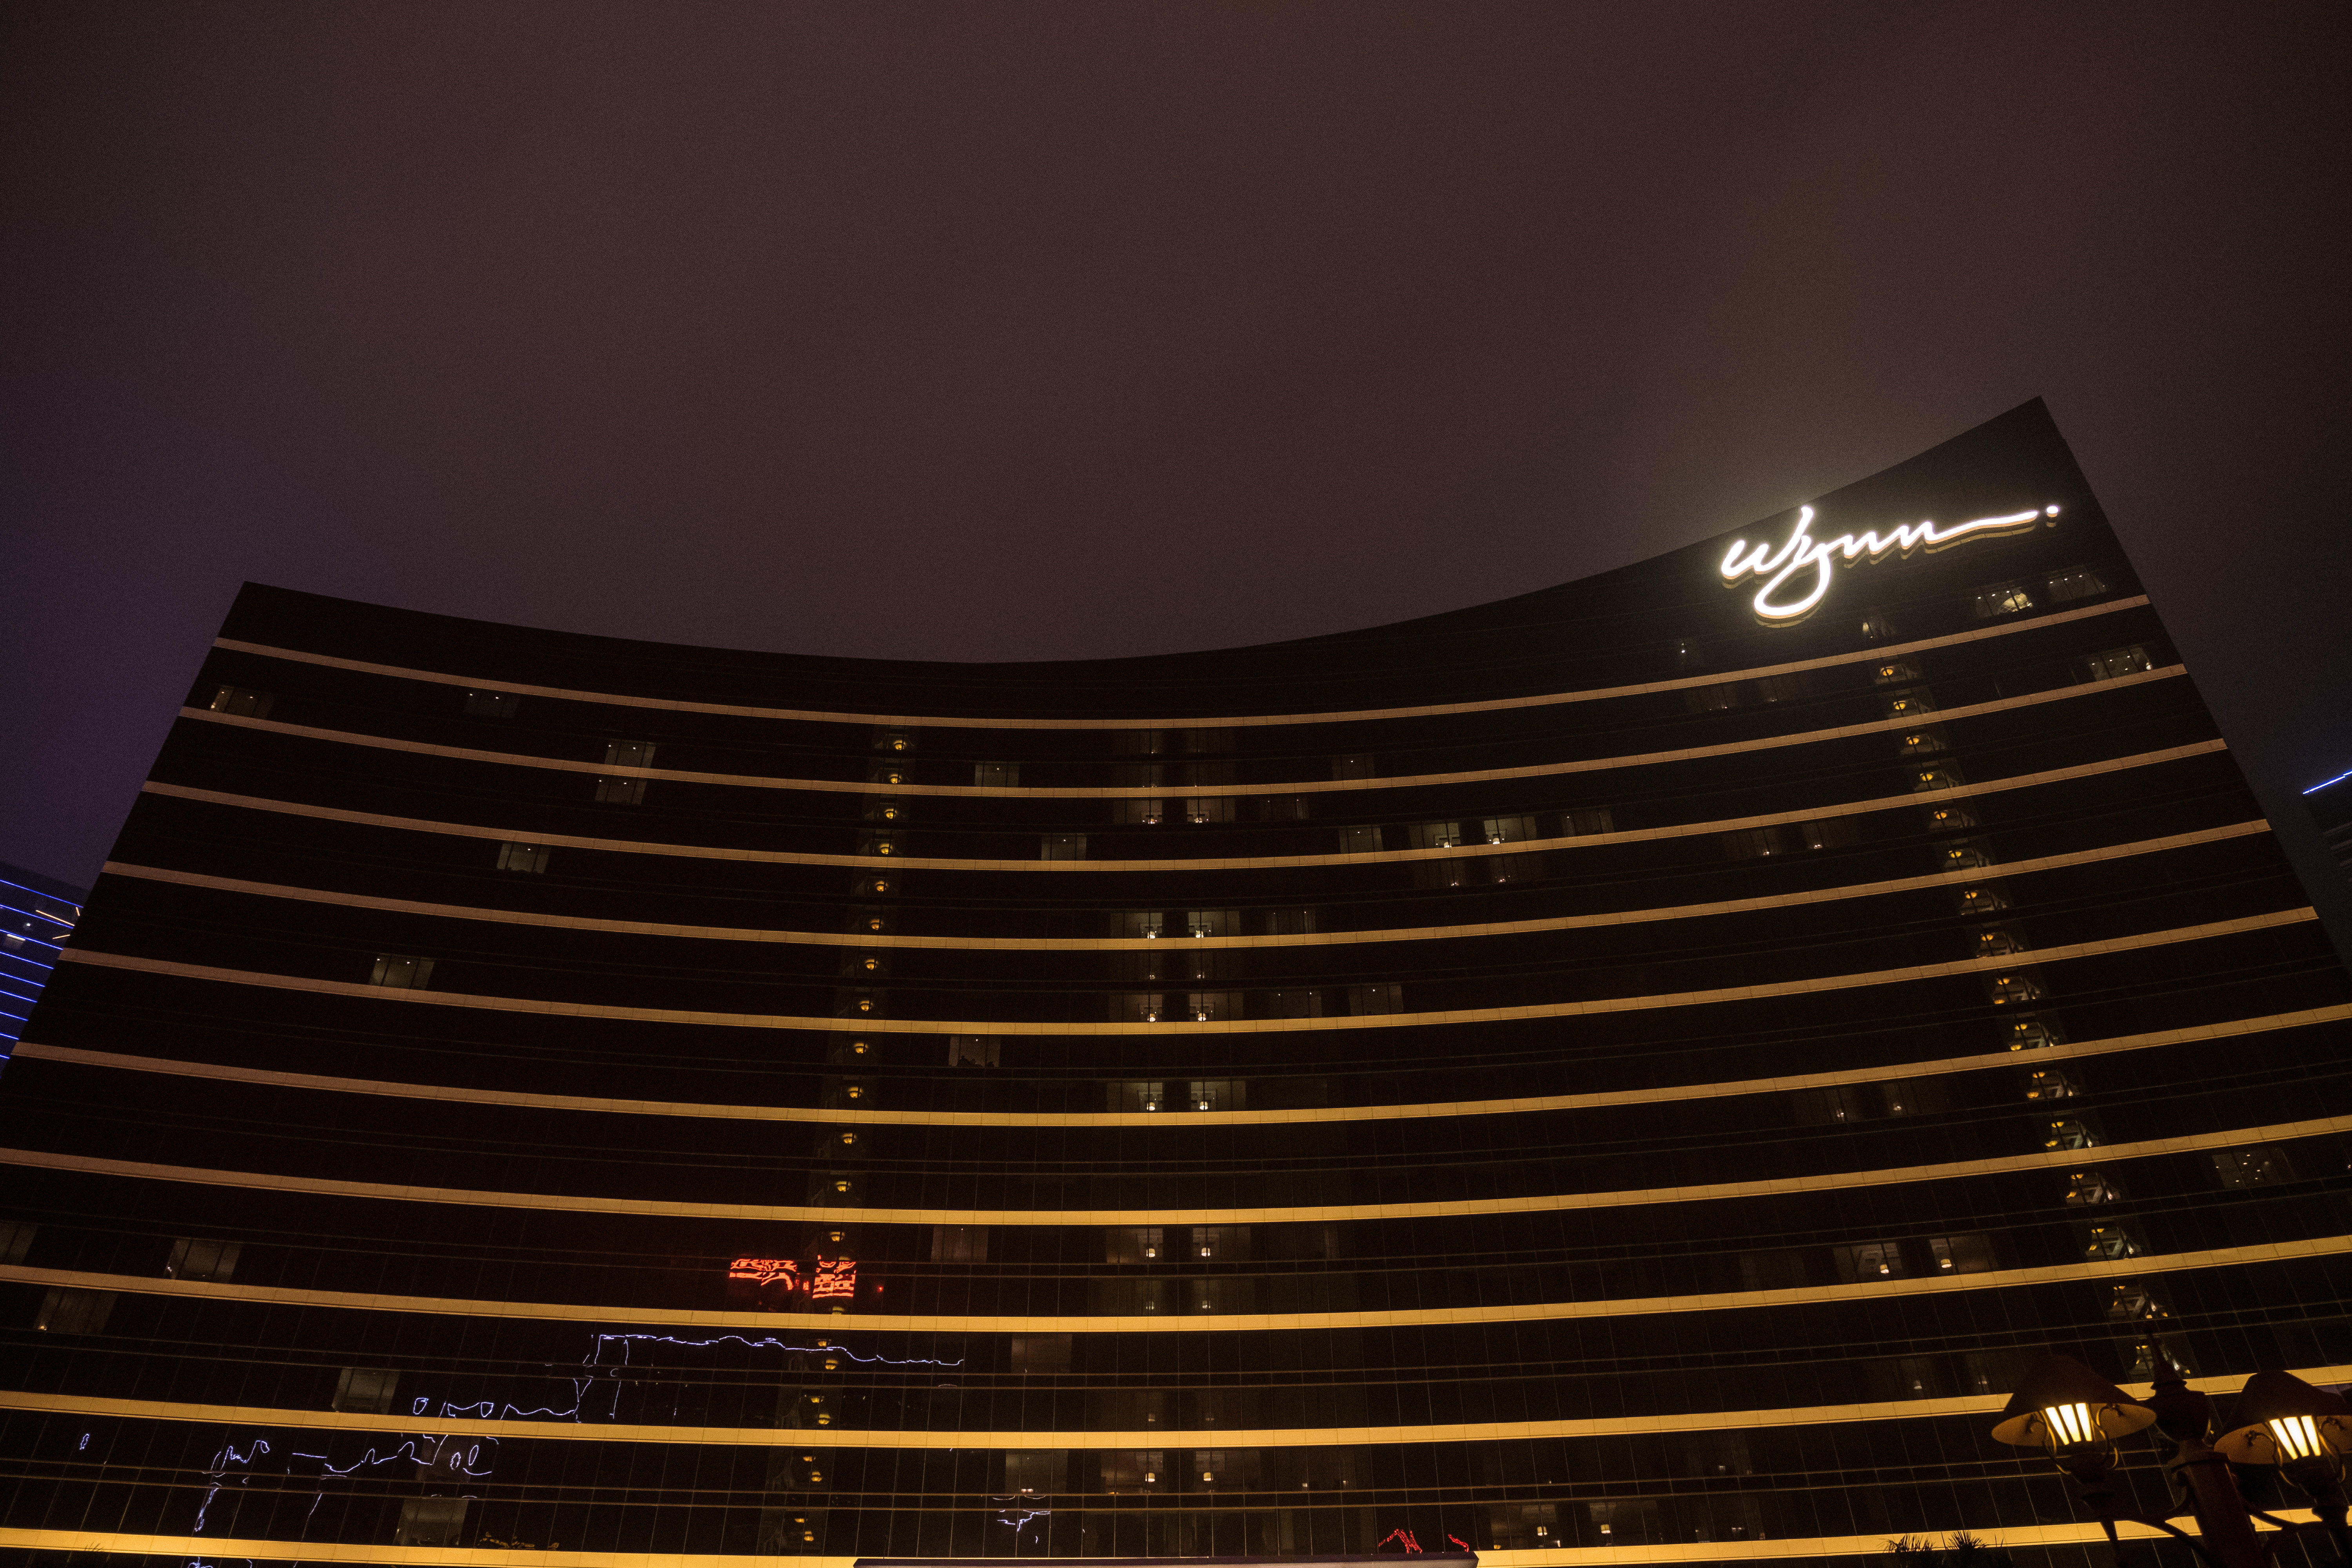 Views of Wynn Resorts Casinos Amid Scrutiny as Macau Regulators Voice Concerns